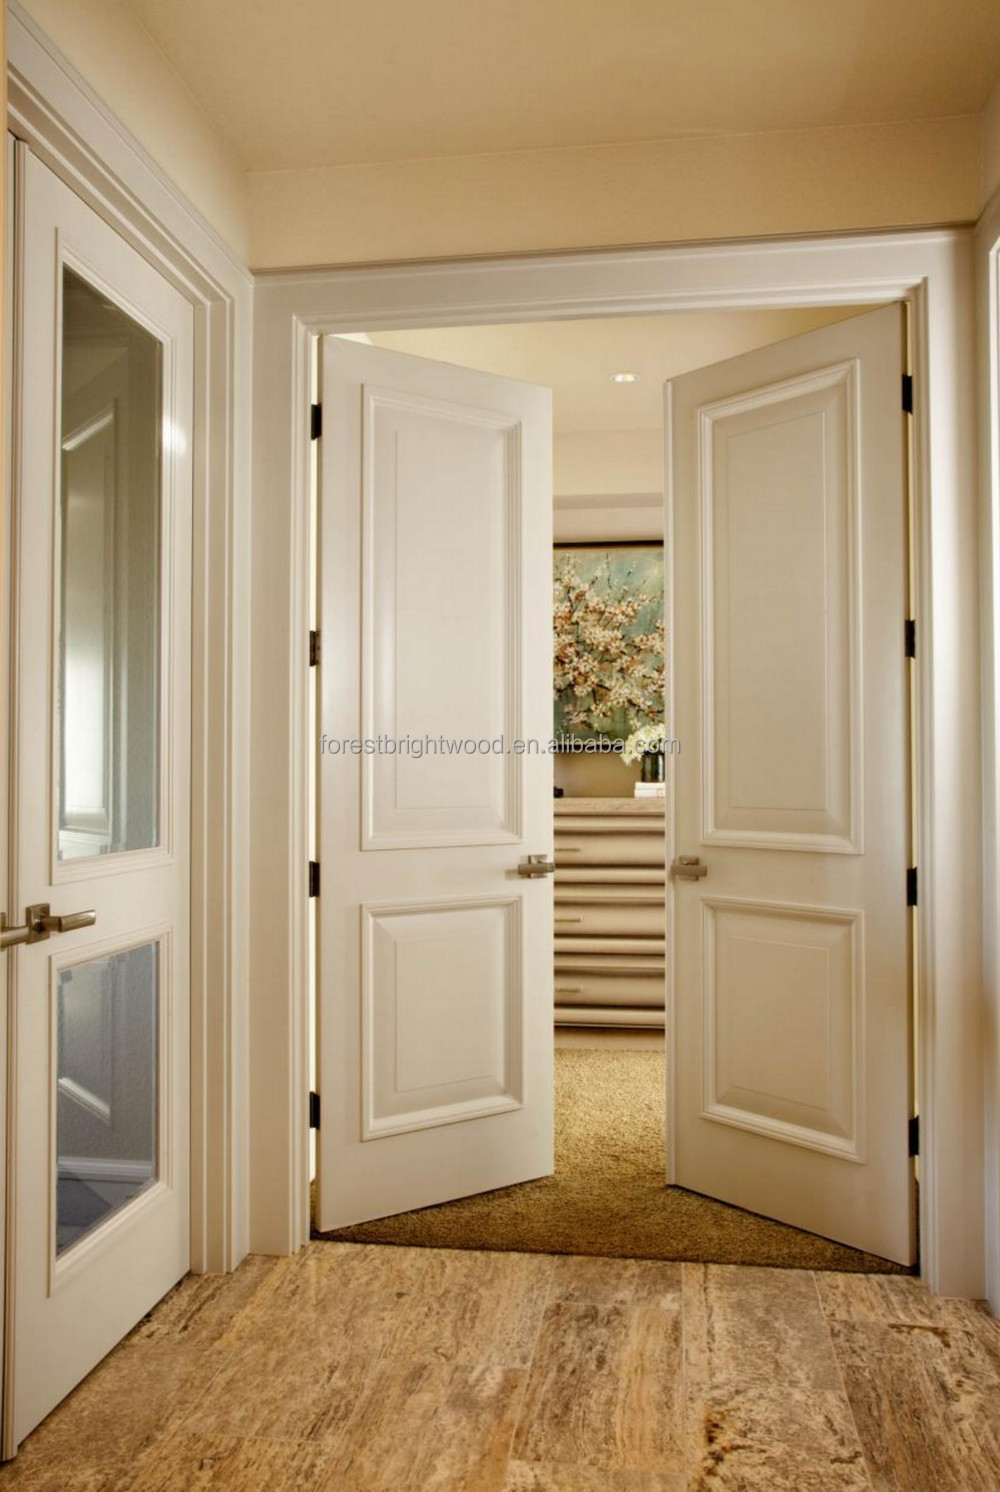 Custom design mahogany prehung wood doors interior buy for Custom interior wood doors